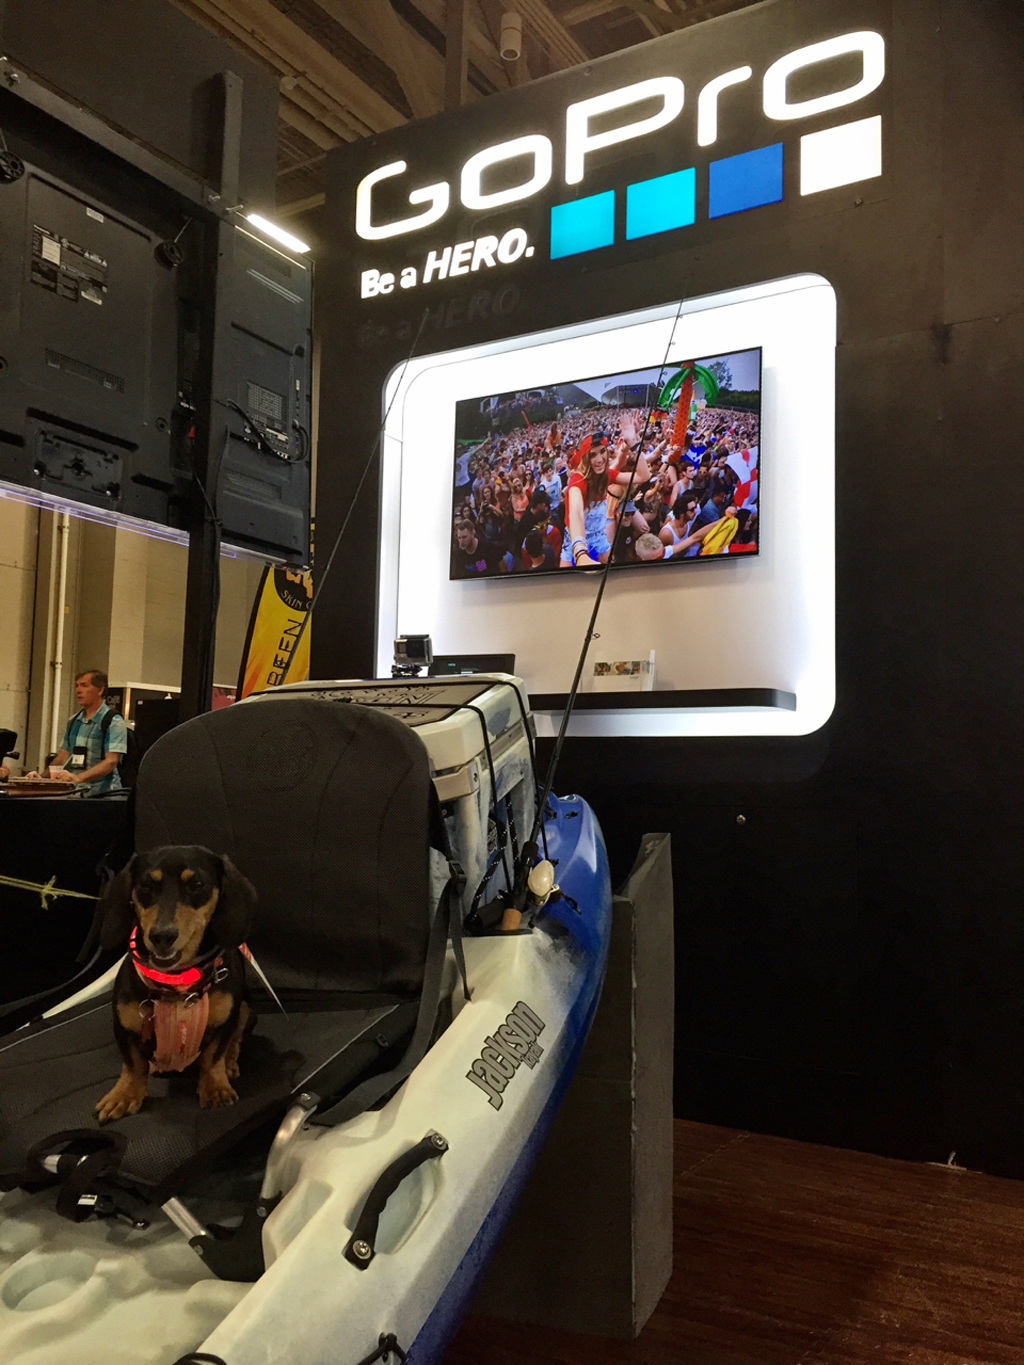 GoPro booth at a show.